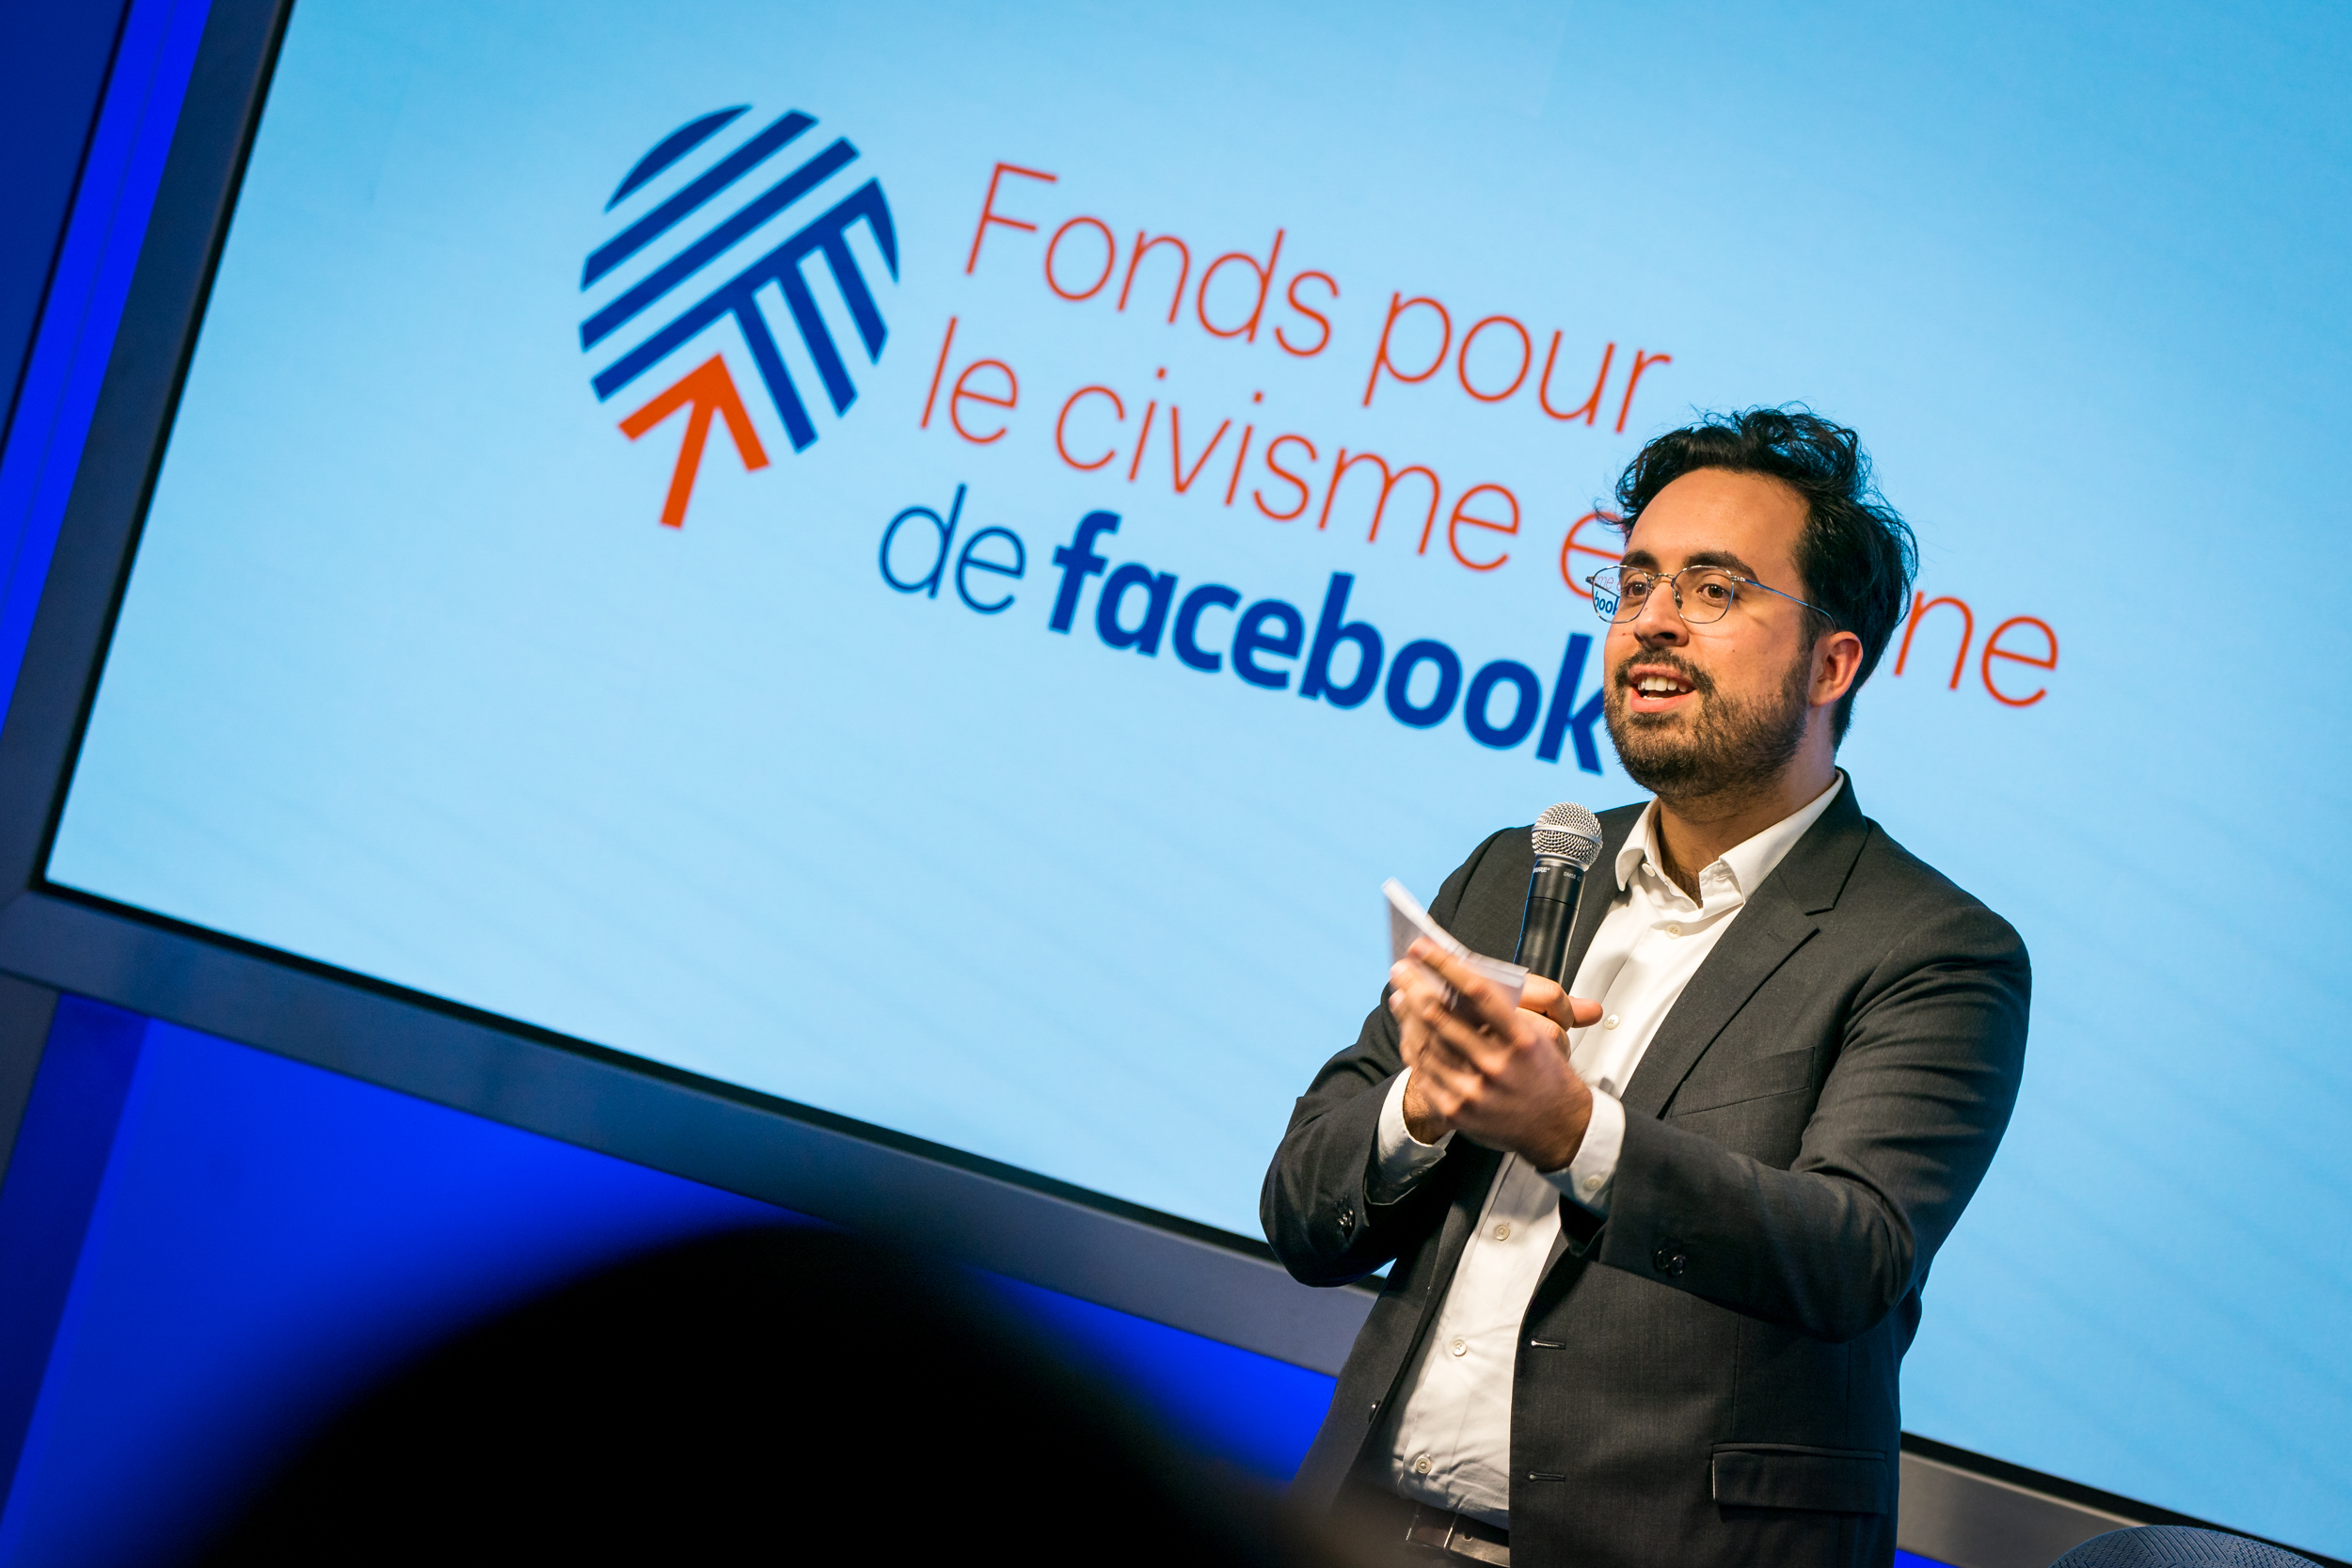 Facebook_Fonds pour le civisme en ligne_05-12-19_ Florian Leger_SHARE & DARE_HD_ N°-239.jpg